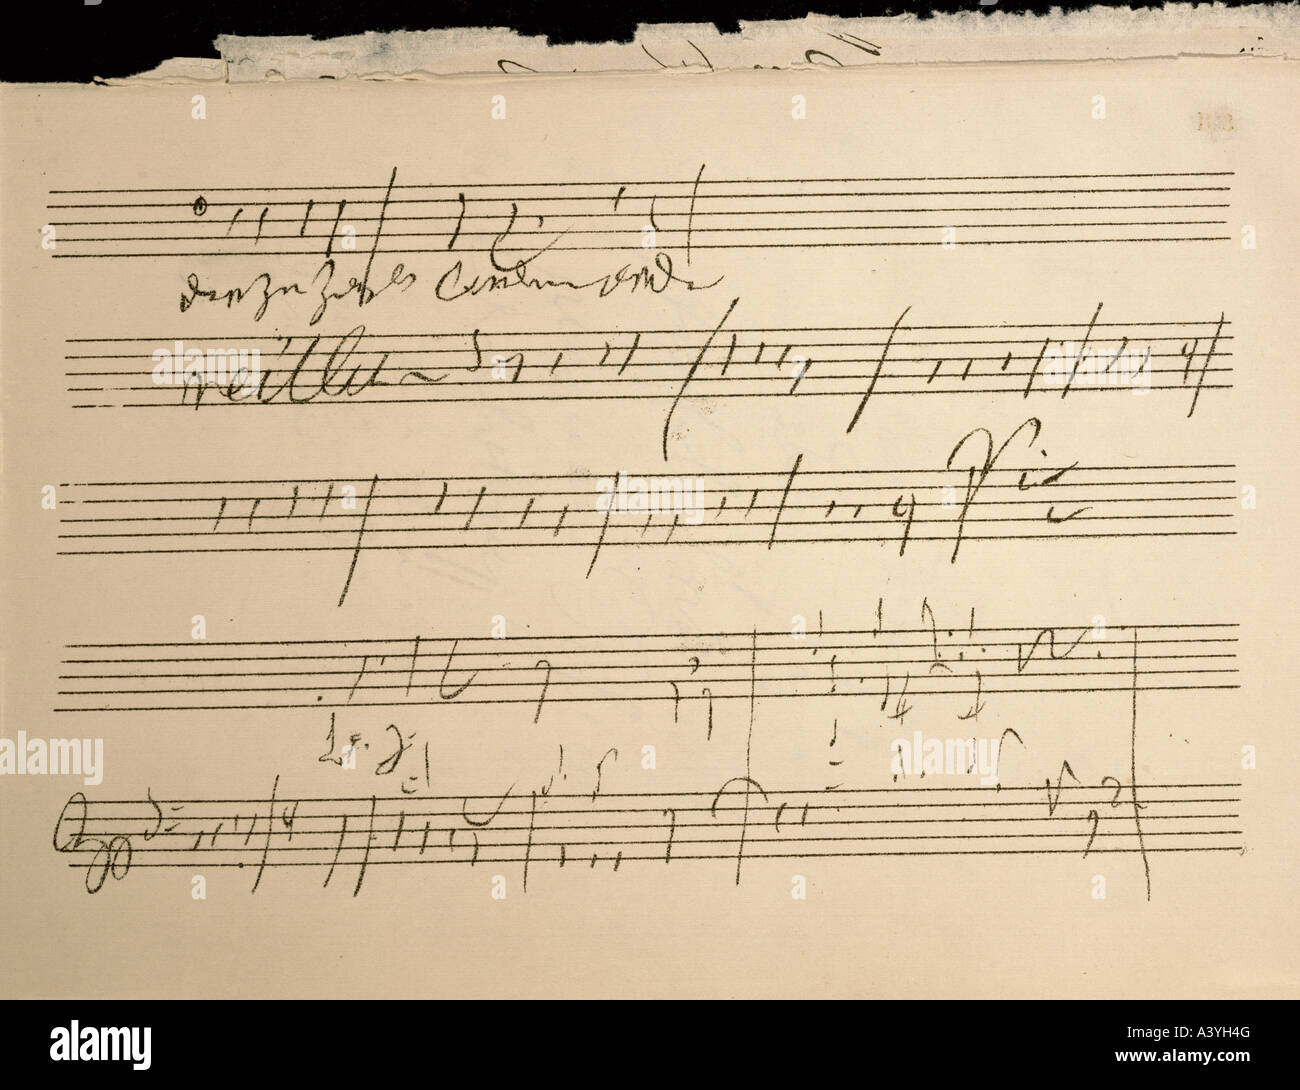 Beethoven, Ludwig van, 17.12.1770 - 26.3.1827, German composer, manuscript, wish for change, score of 9th symphony, - Stock Image